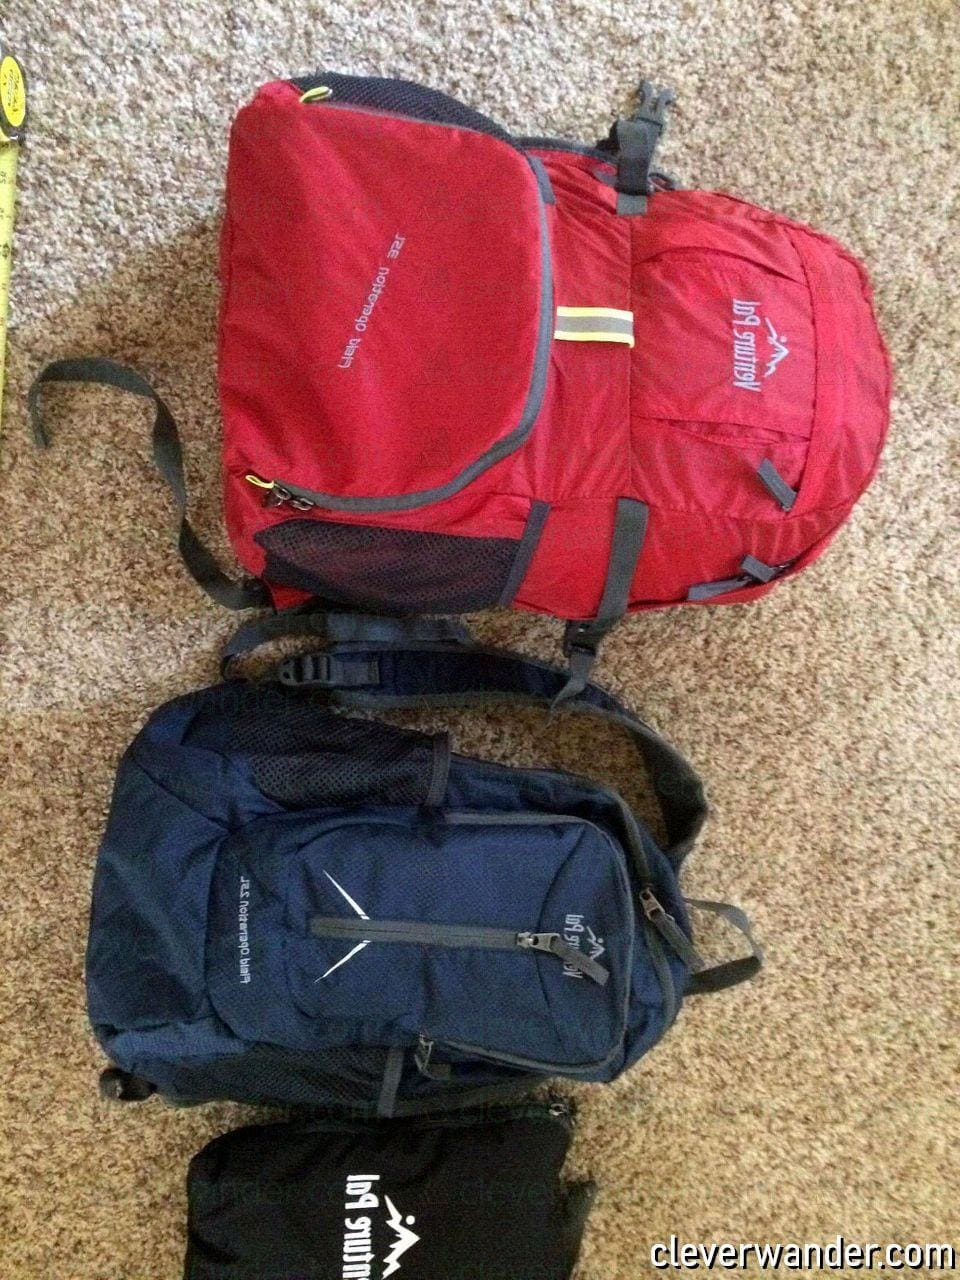 Venture Pal Lightweight Hiking Backpack - image review 3